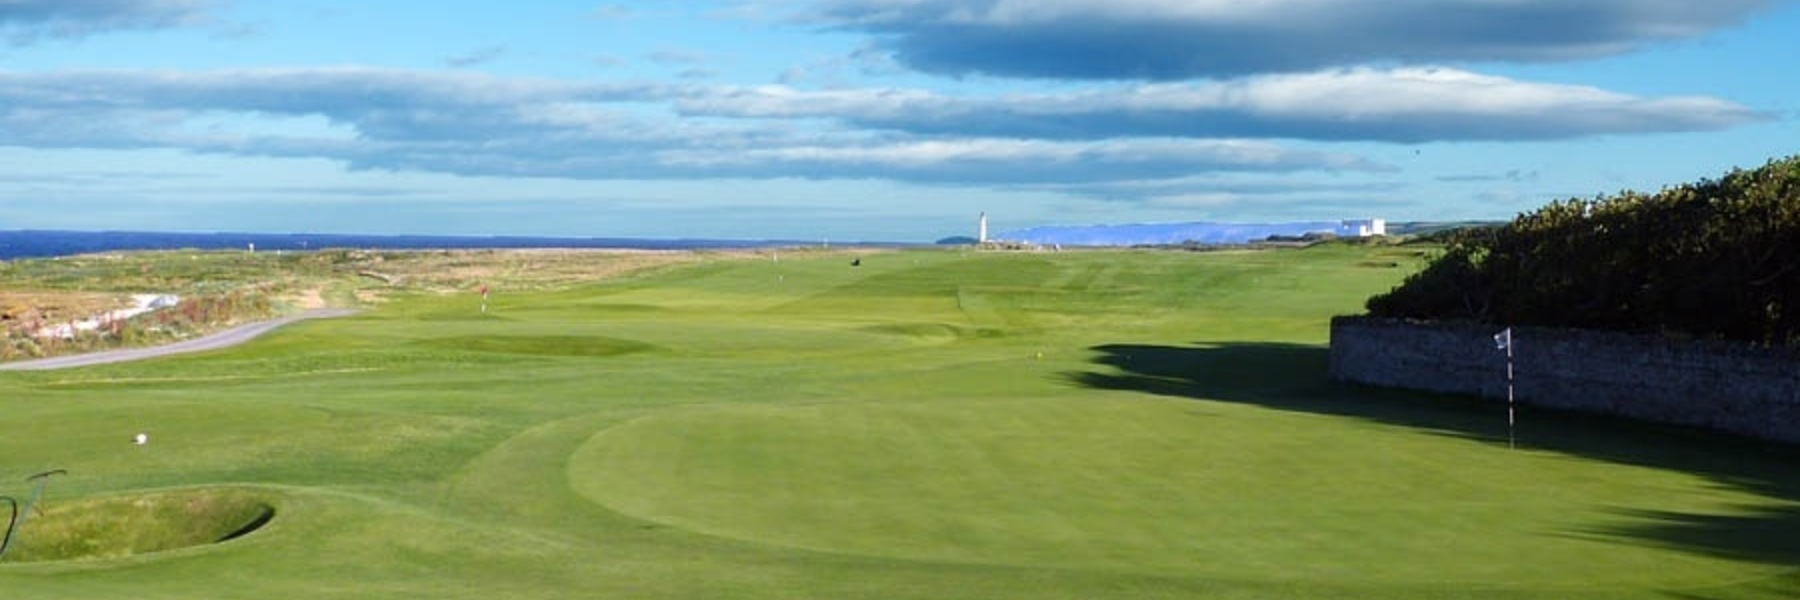 Golf Vacation Package - Edinburgh Summer Stay and Play - 5 Nights/3 Rounds + car for $1499!